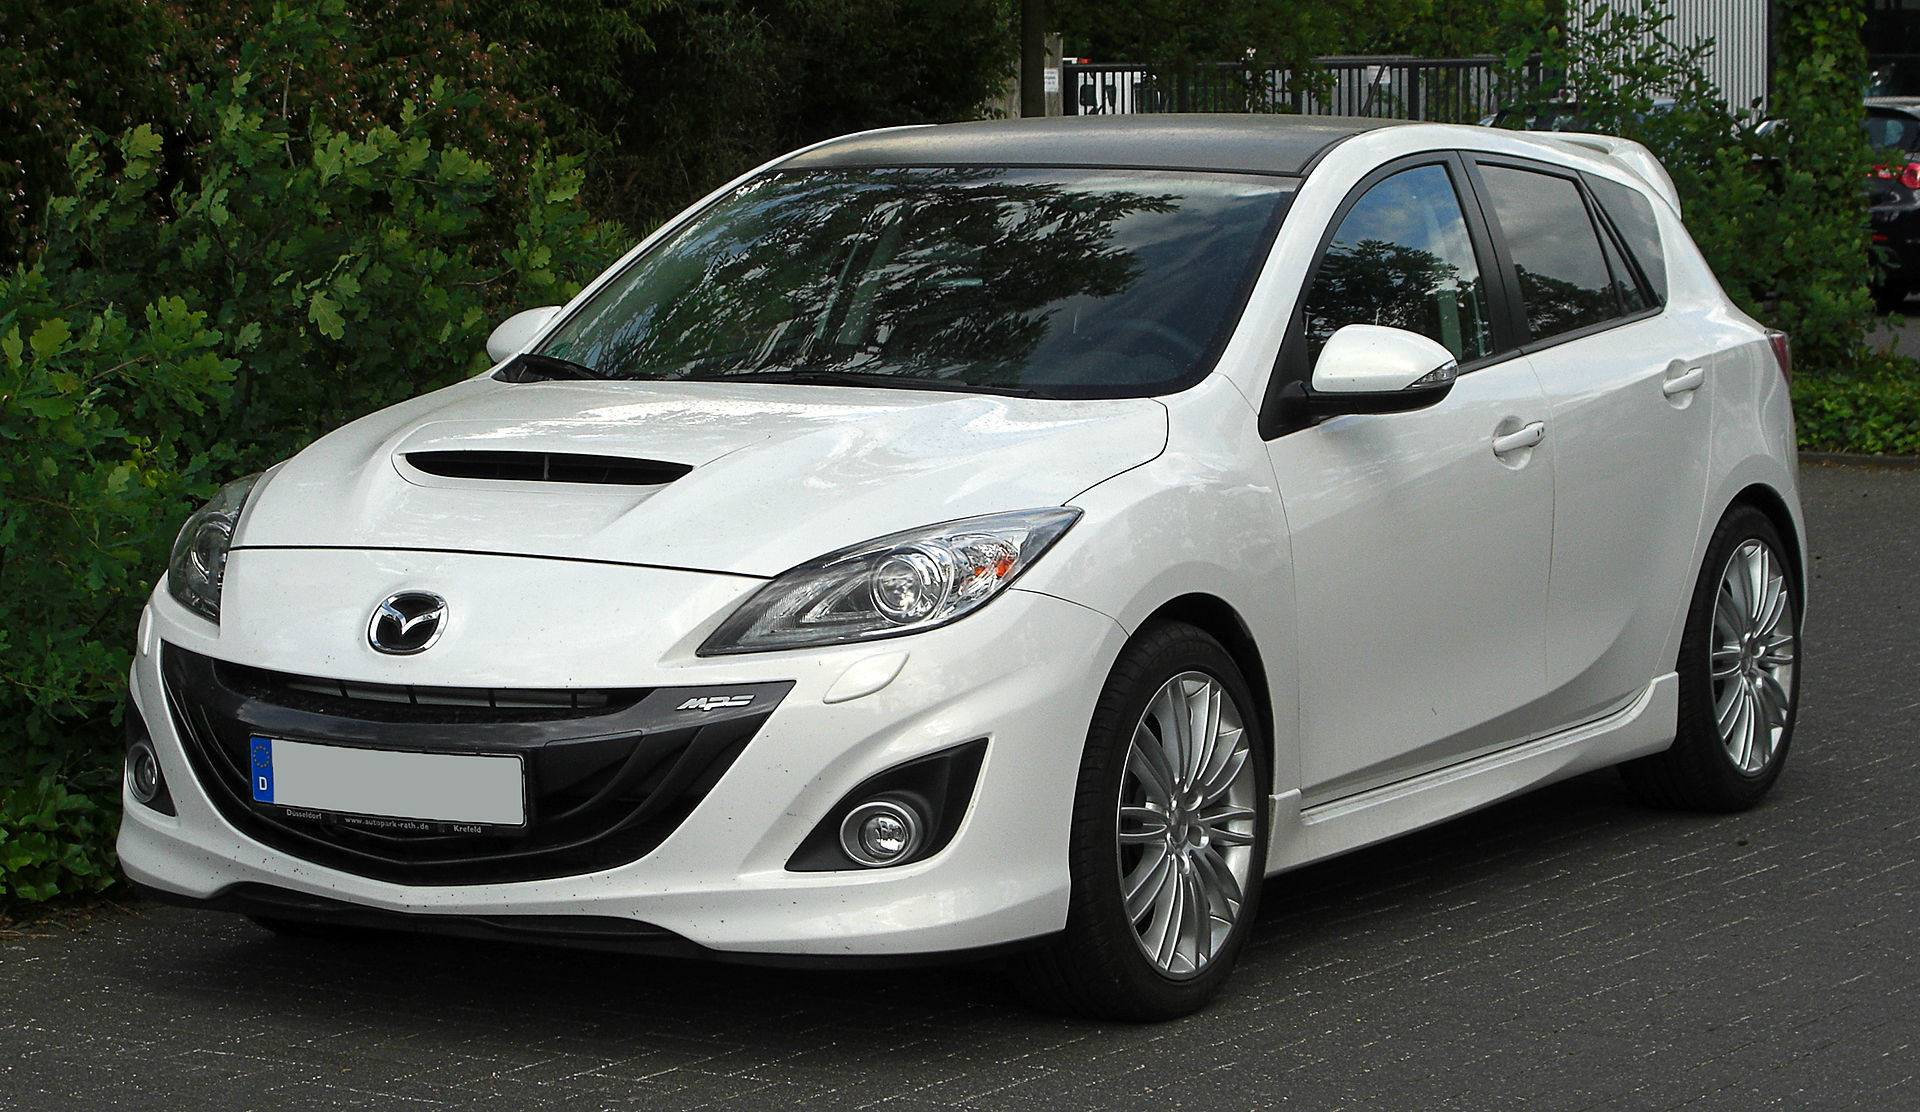 Mazdaspeed3 For Sale >> 2005 Mazda 3 SP23 Special Edition 4dr Hatchback 2.3L Manual